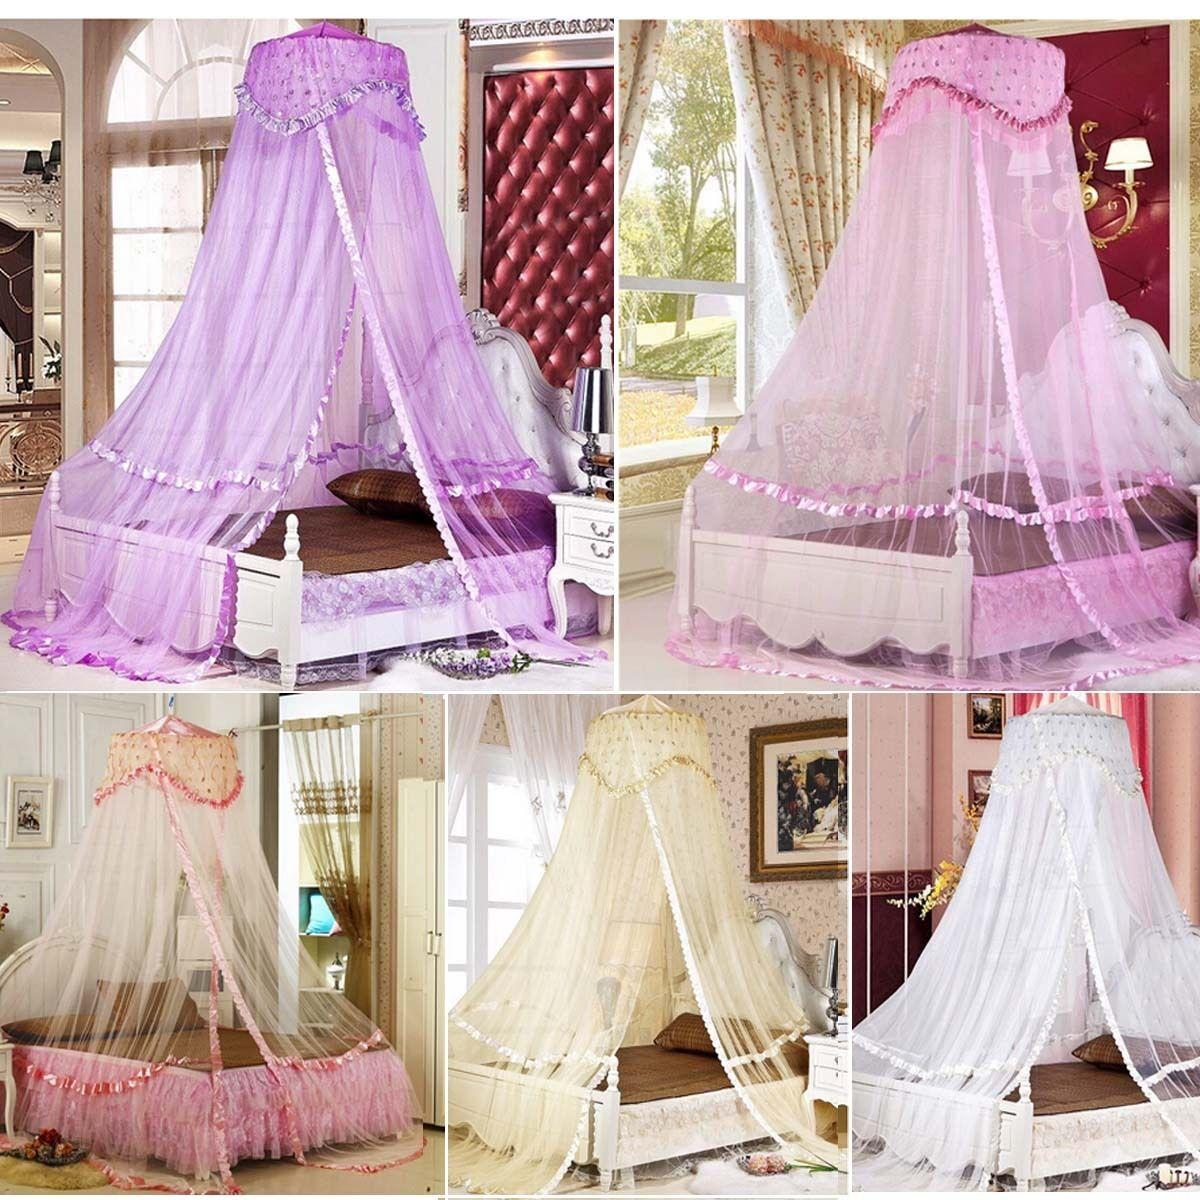 Hight Quality Romantic Bed Dome Netting Canopy Princess Round Mosquito Net Window Mosquito Net Best Mosquito Control From Haorizi123 $36.18| Dhgate.Com & Hight Quality Romantic Bed Dome Netting Canopy Princess Round ...